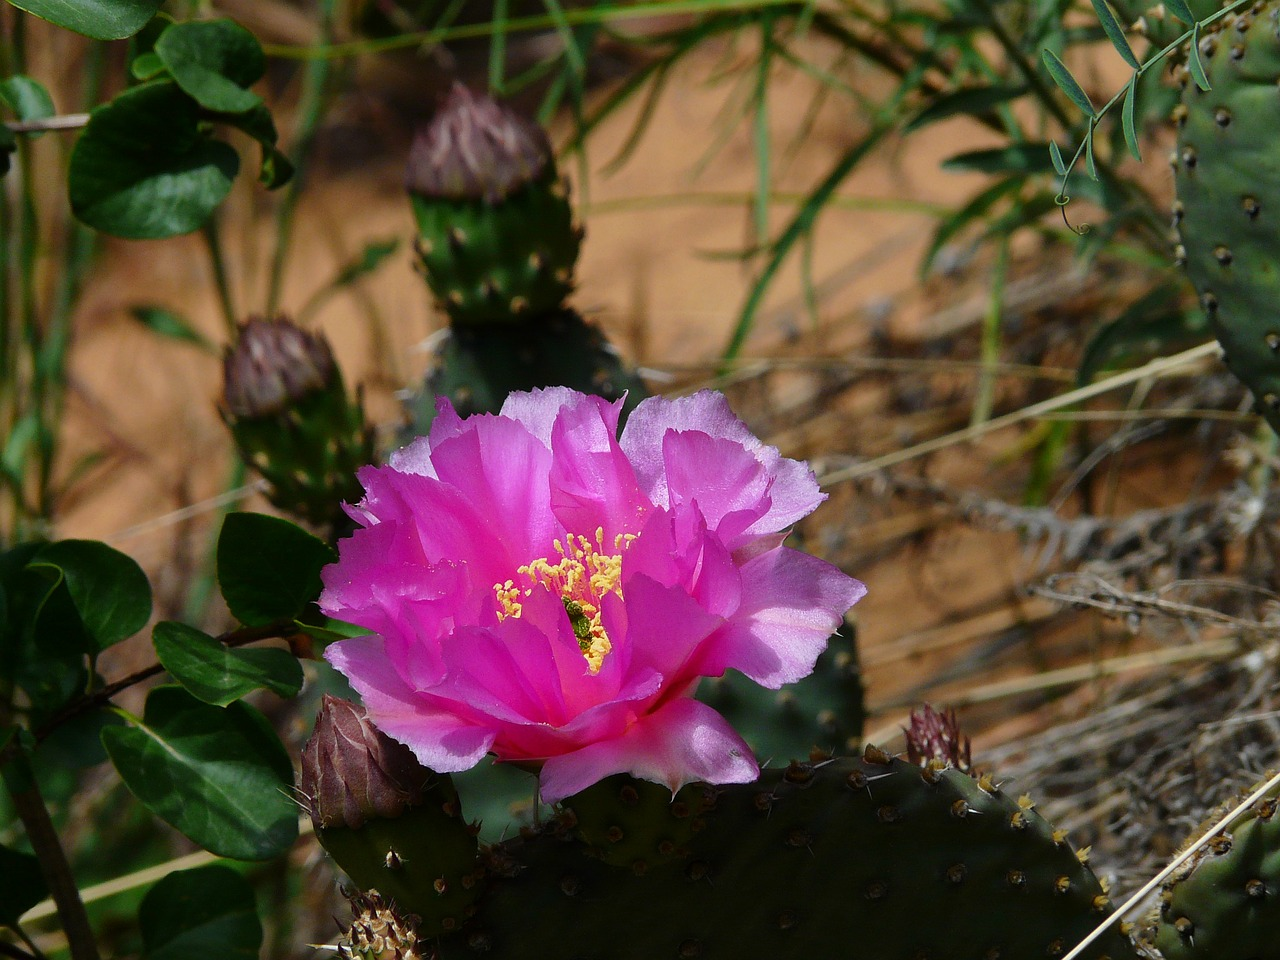 cactus blossom bloom free photo